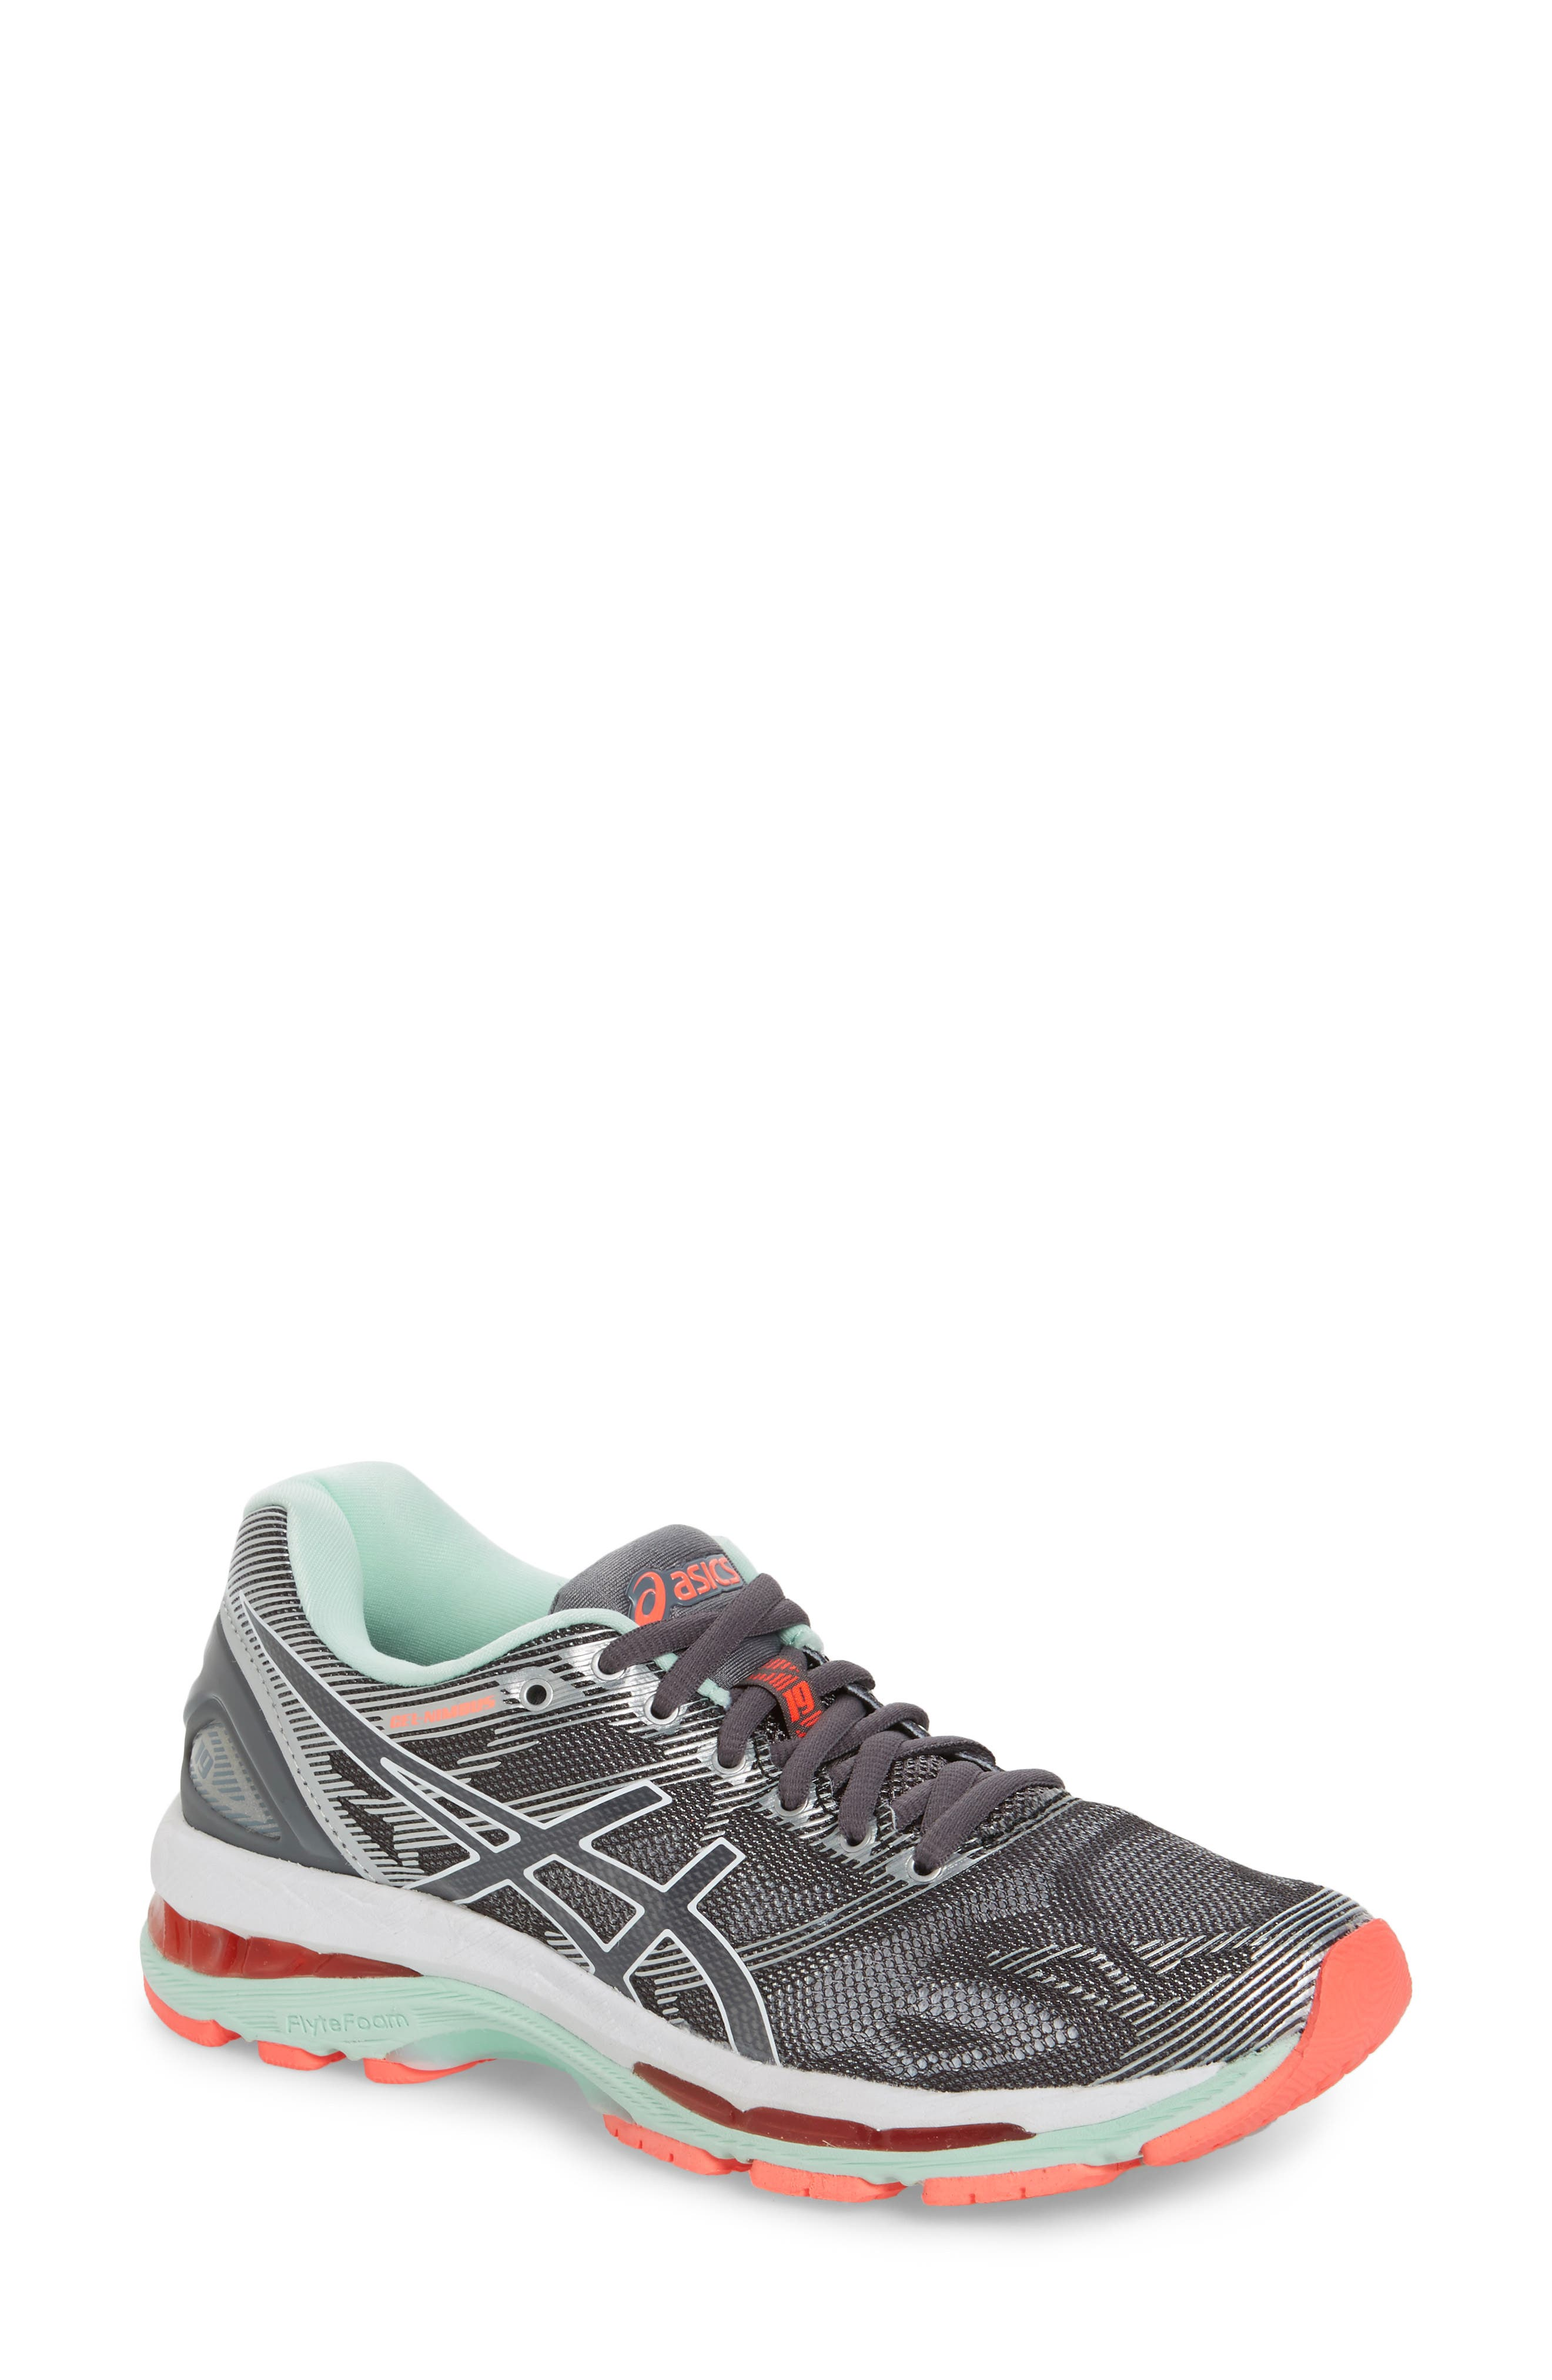 ASICS® GEL®-Nimbus 19 Running Shoe (Women) (Regular Retail Price: $159.95)